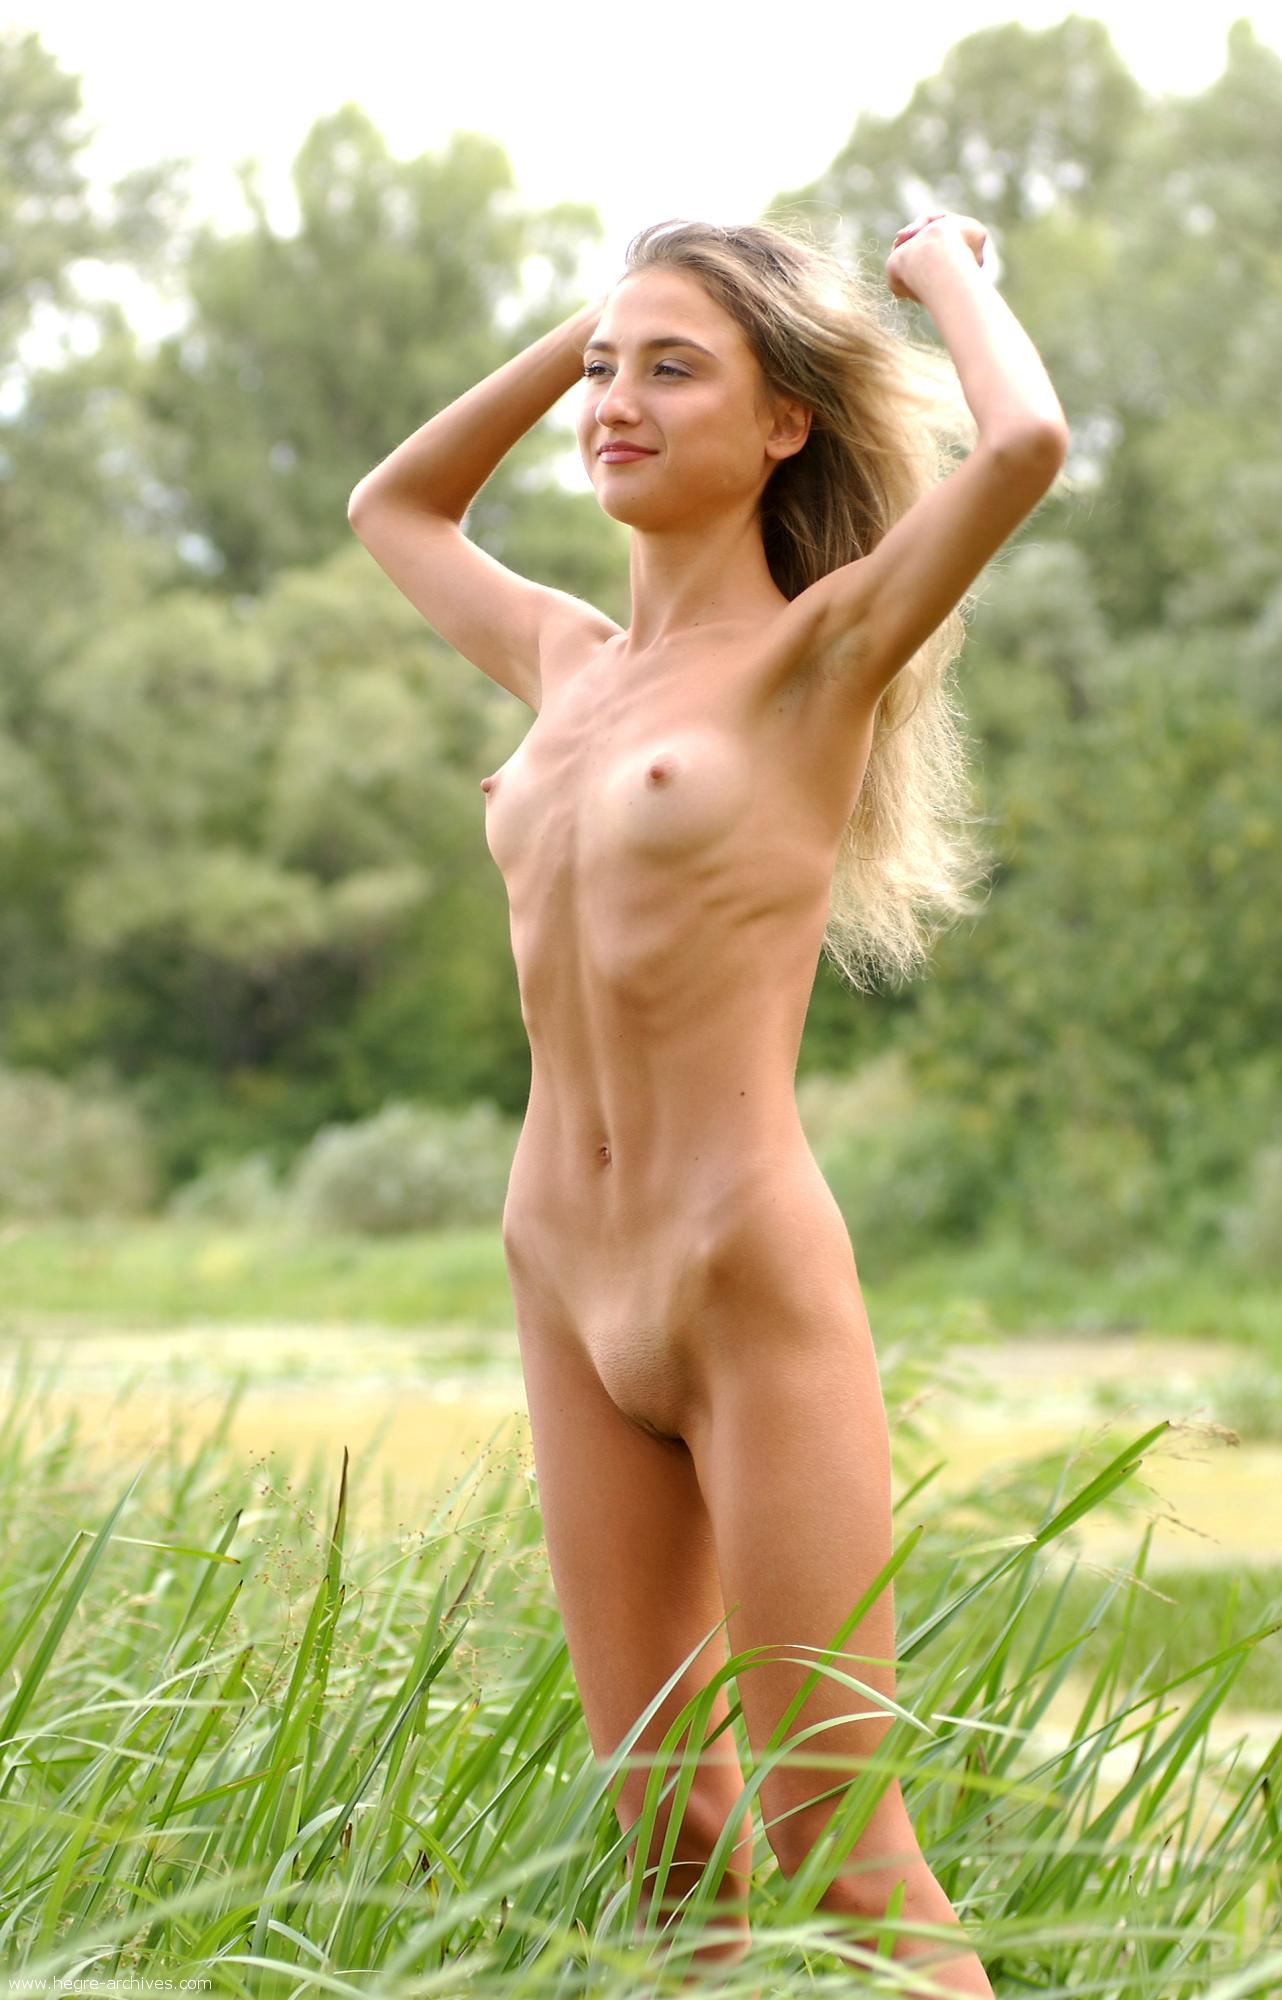 Nude women erect nipples whom can